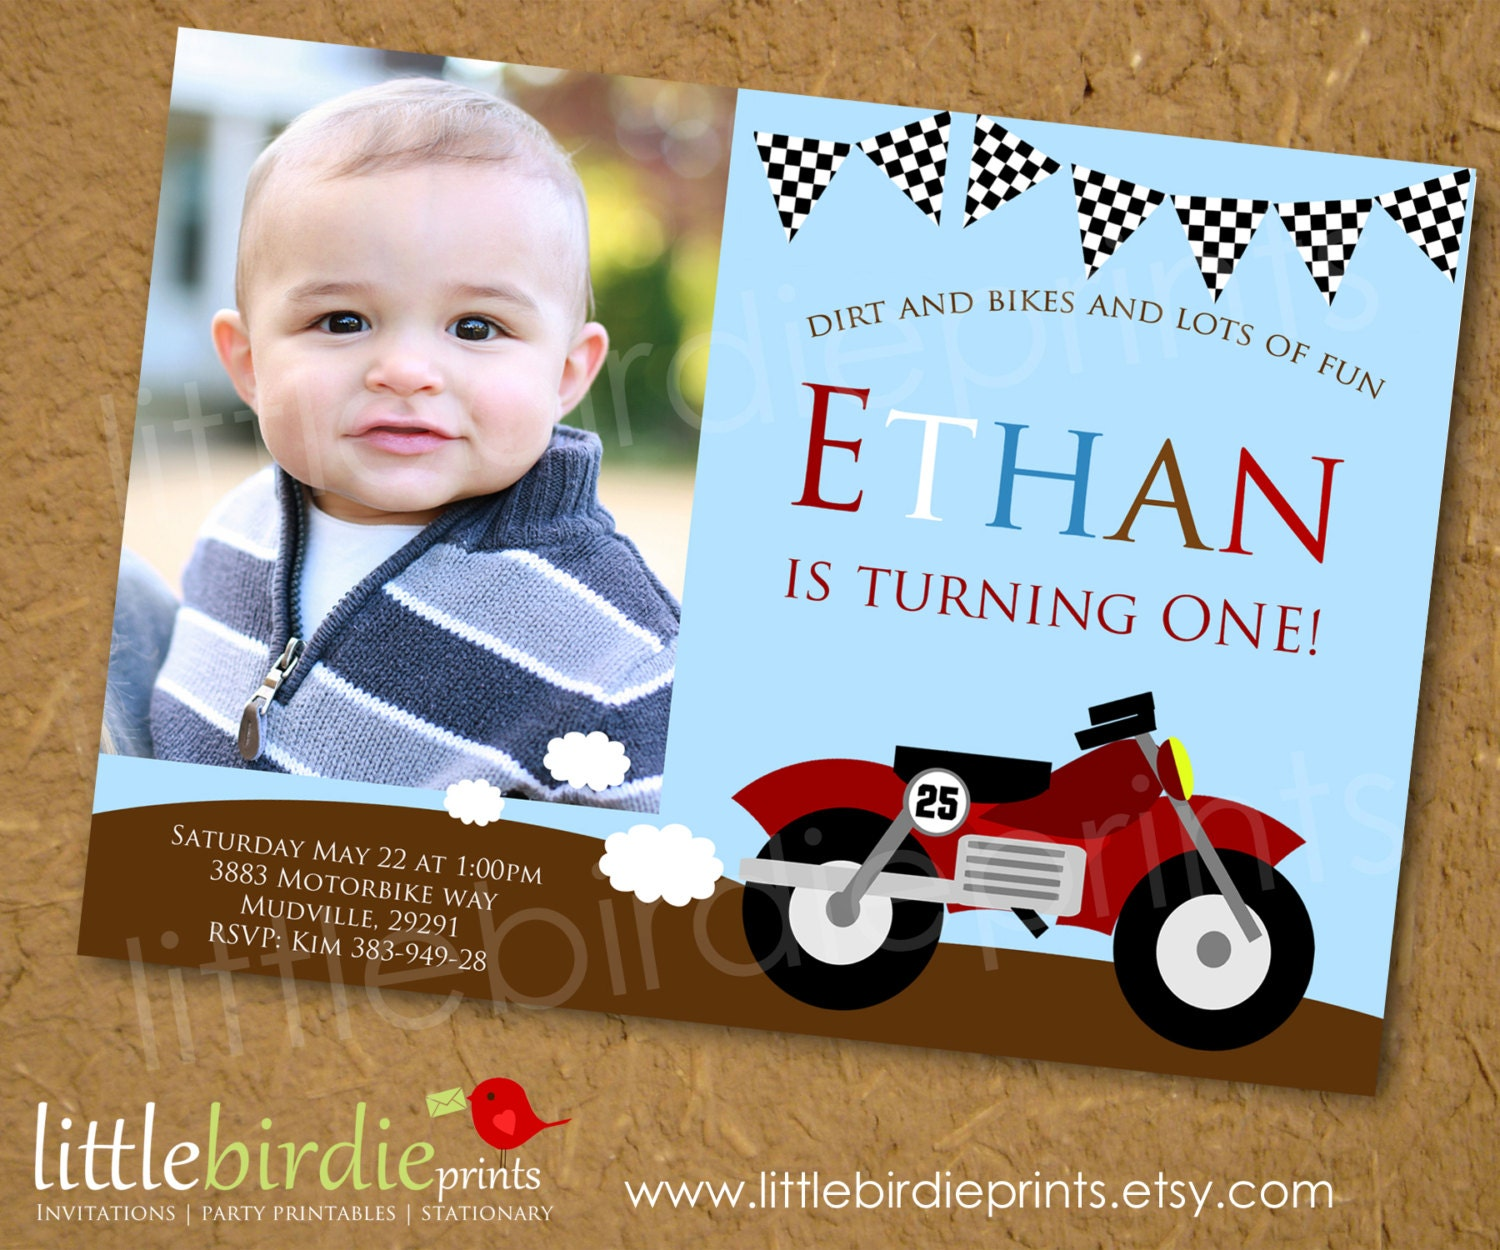 Cafe Racer Motorbike Party Birthday Party Ideas – Motorcycle Party Invitations